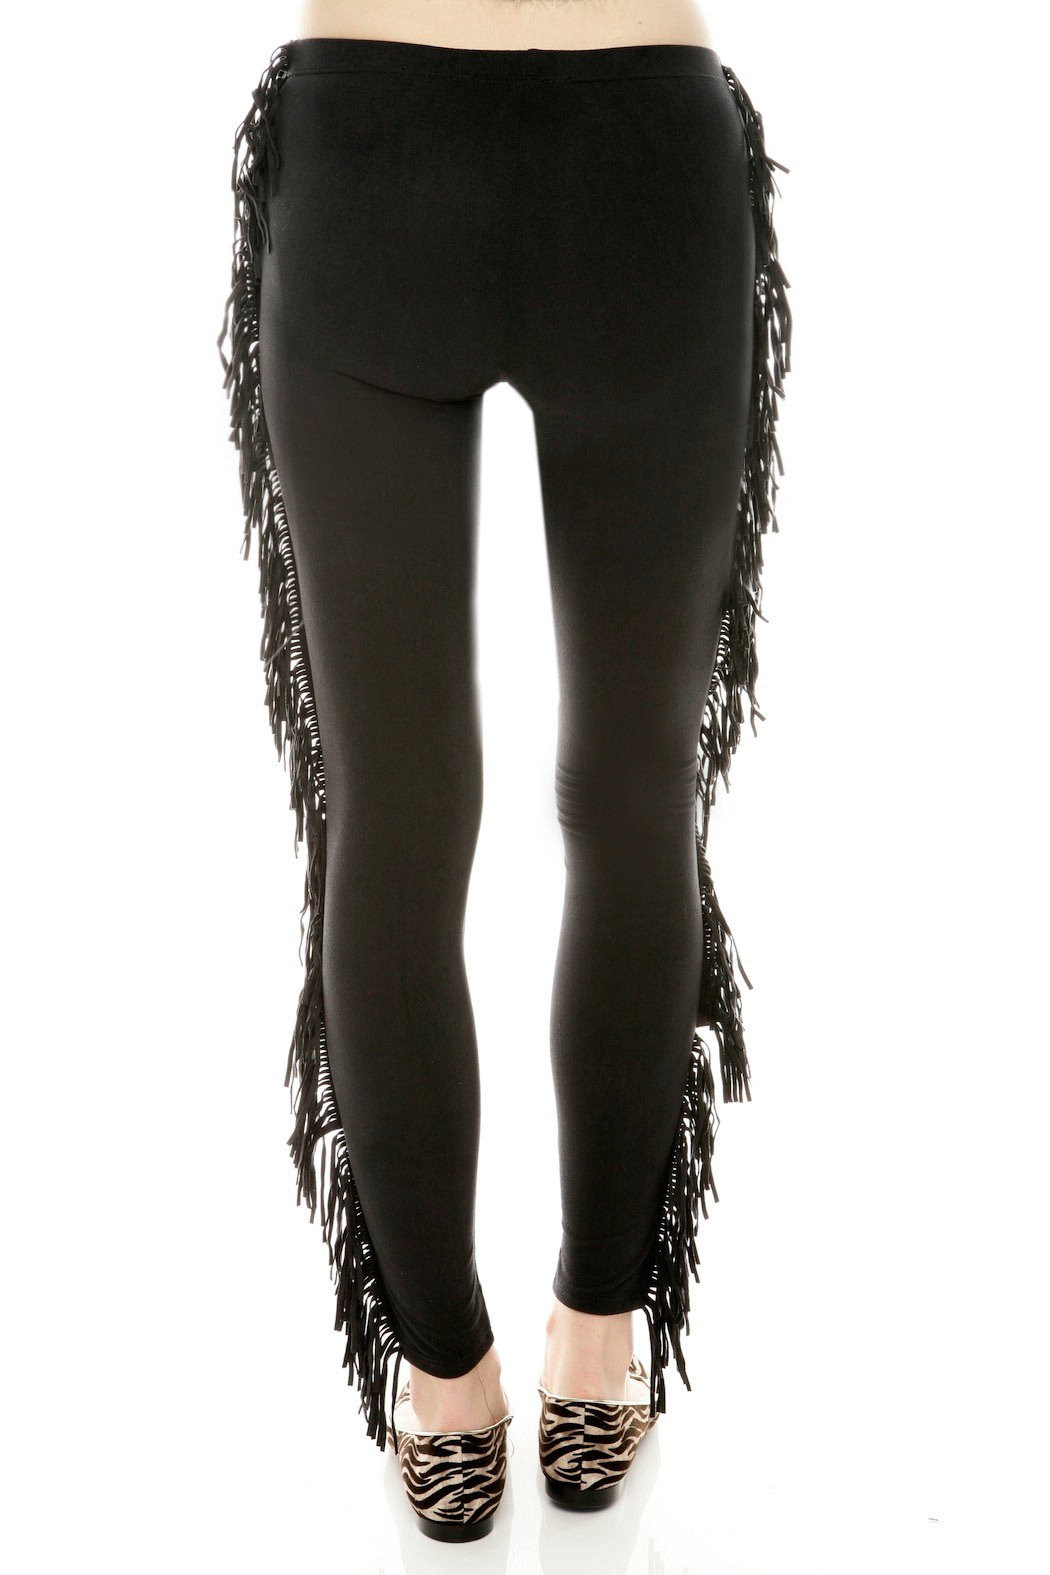 91d0b03c559cd See You Monday Black Fringe Leggings - Back Cropped Image